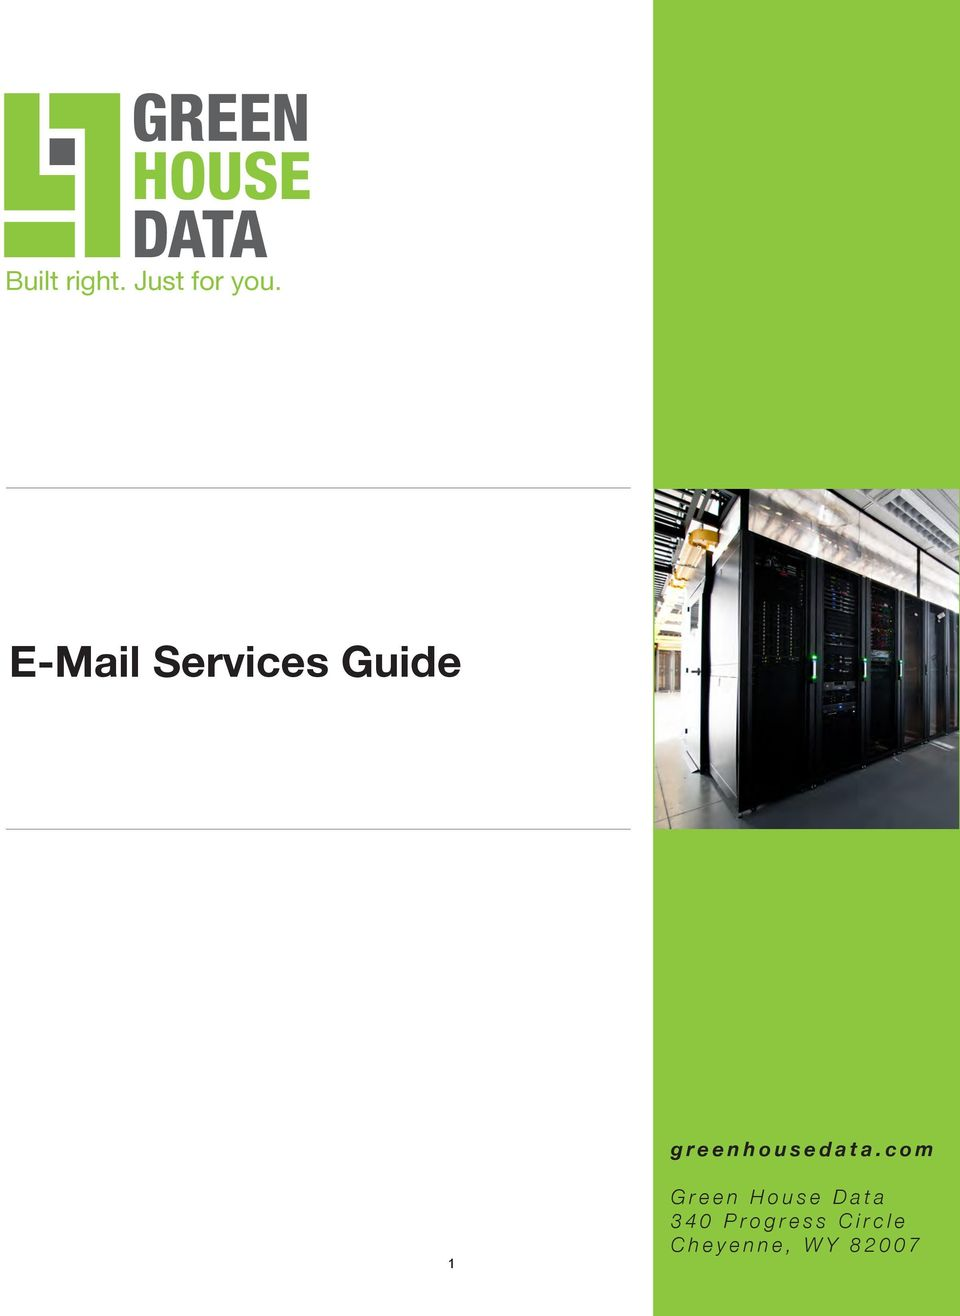 E-Mail Services Guide